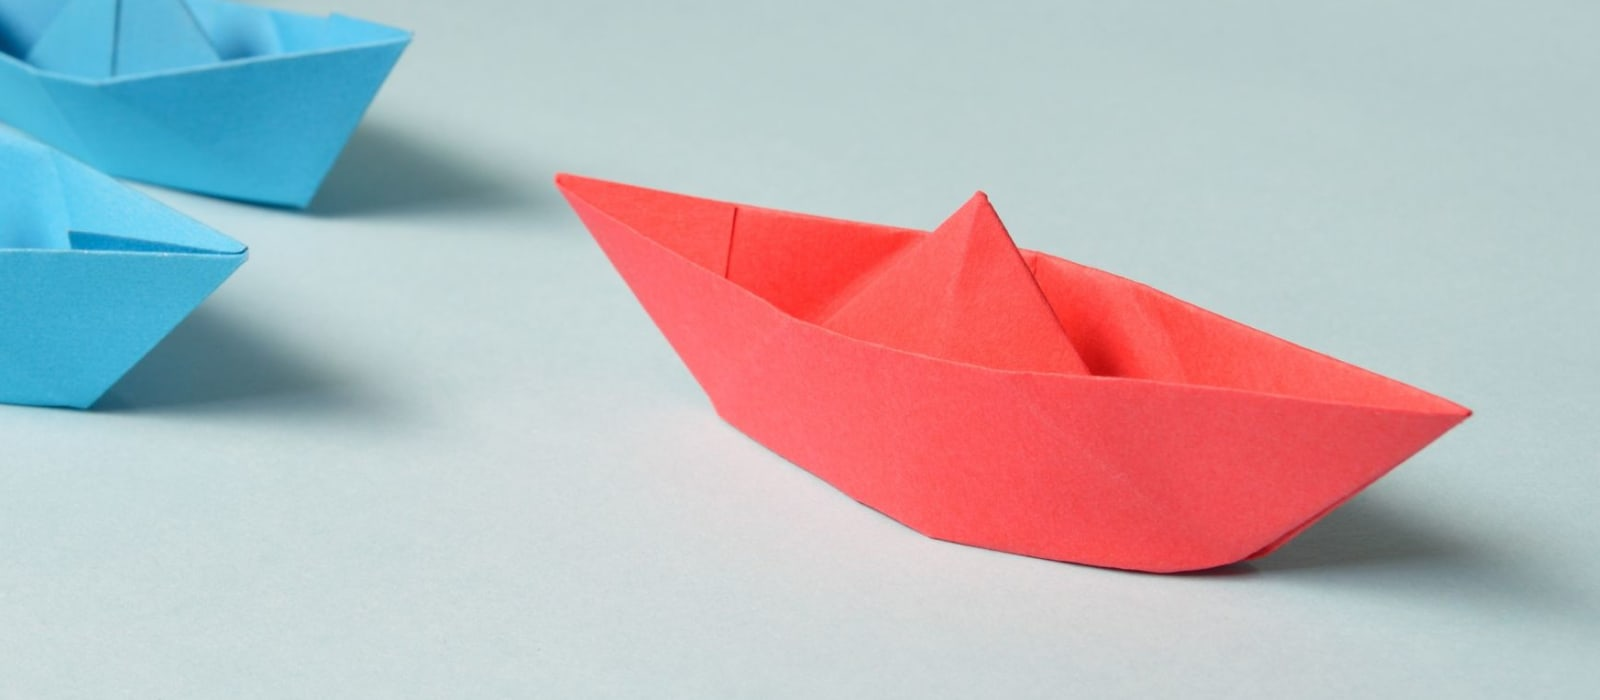 Paper boats - one larger red boat followed by four blue boats